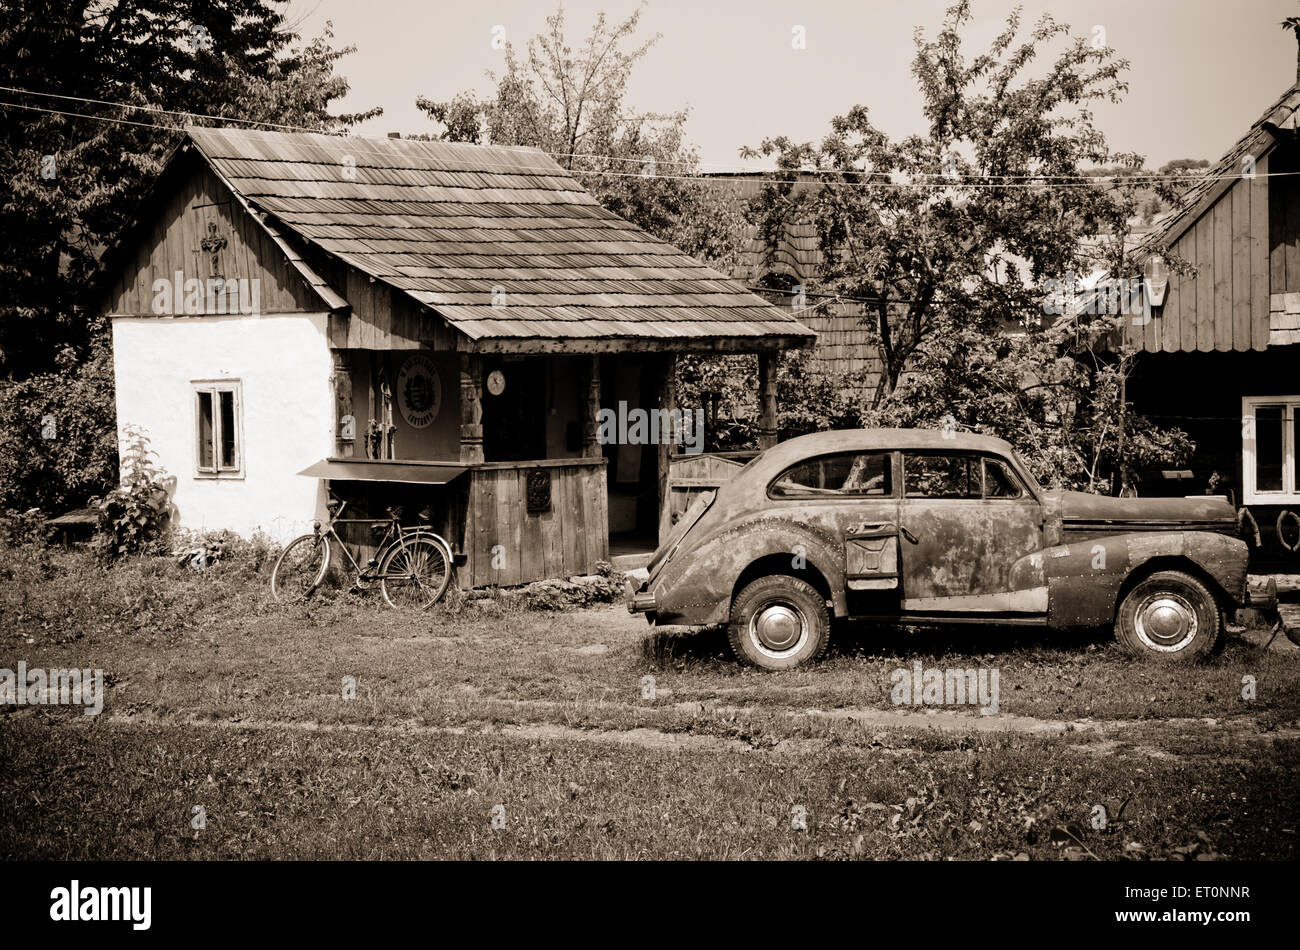 Old retro rusty vintage car and old house - Stock Image